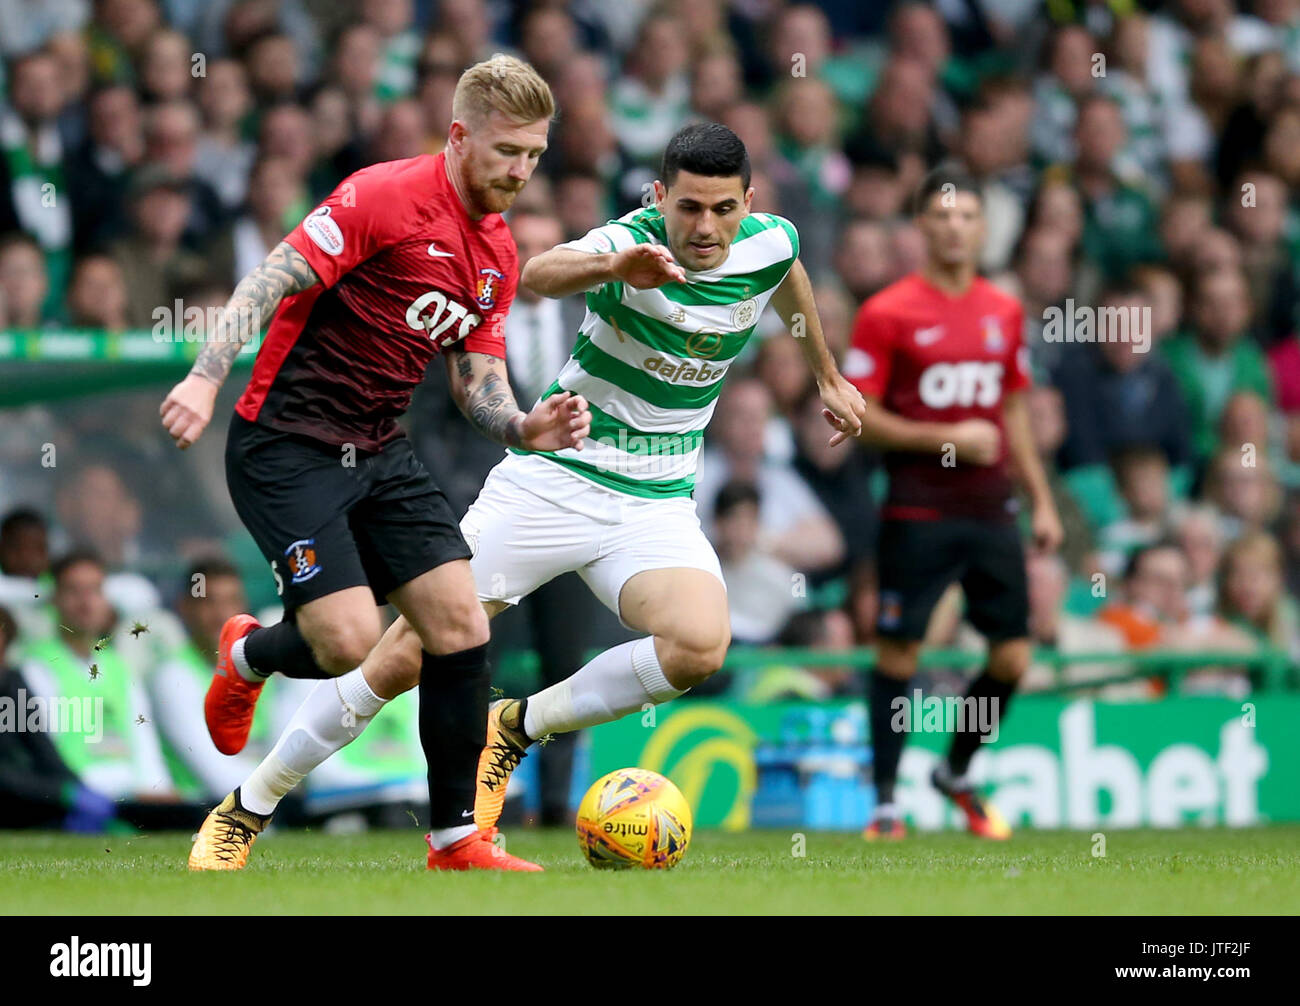 Celtic's Tom Rogic and Kilmarnock's Alan Power battle for the ball during the Betfred Cup, Second Round match at Celtic Park, Glasgow. - Stock Image